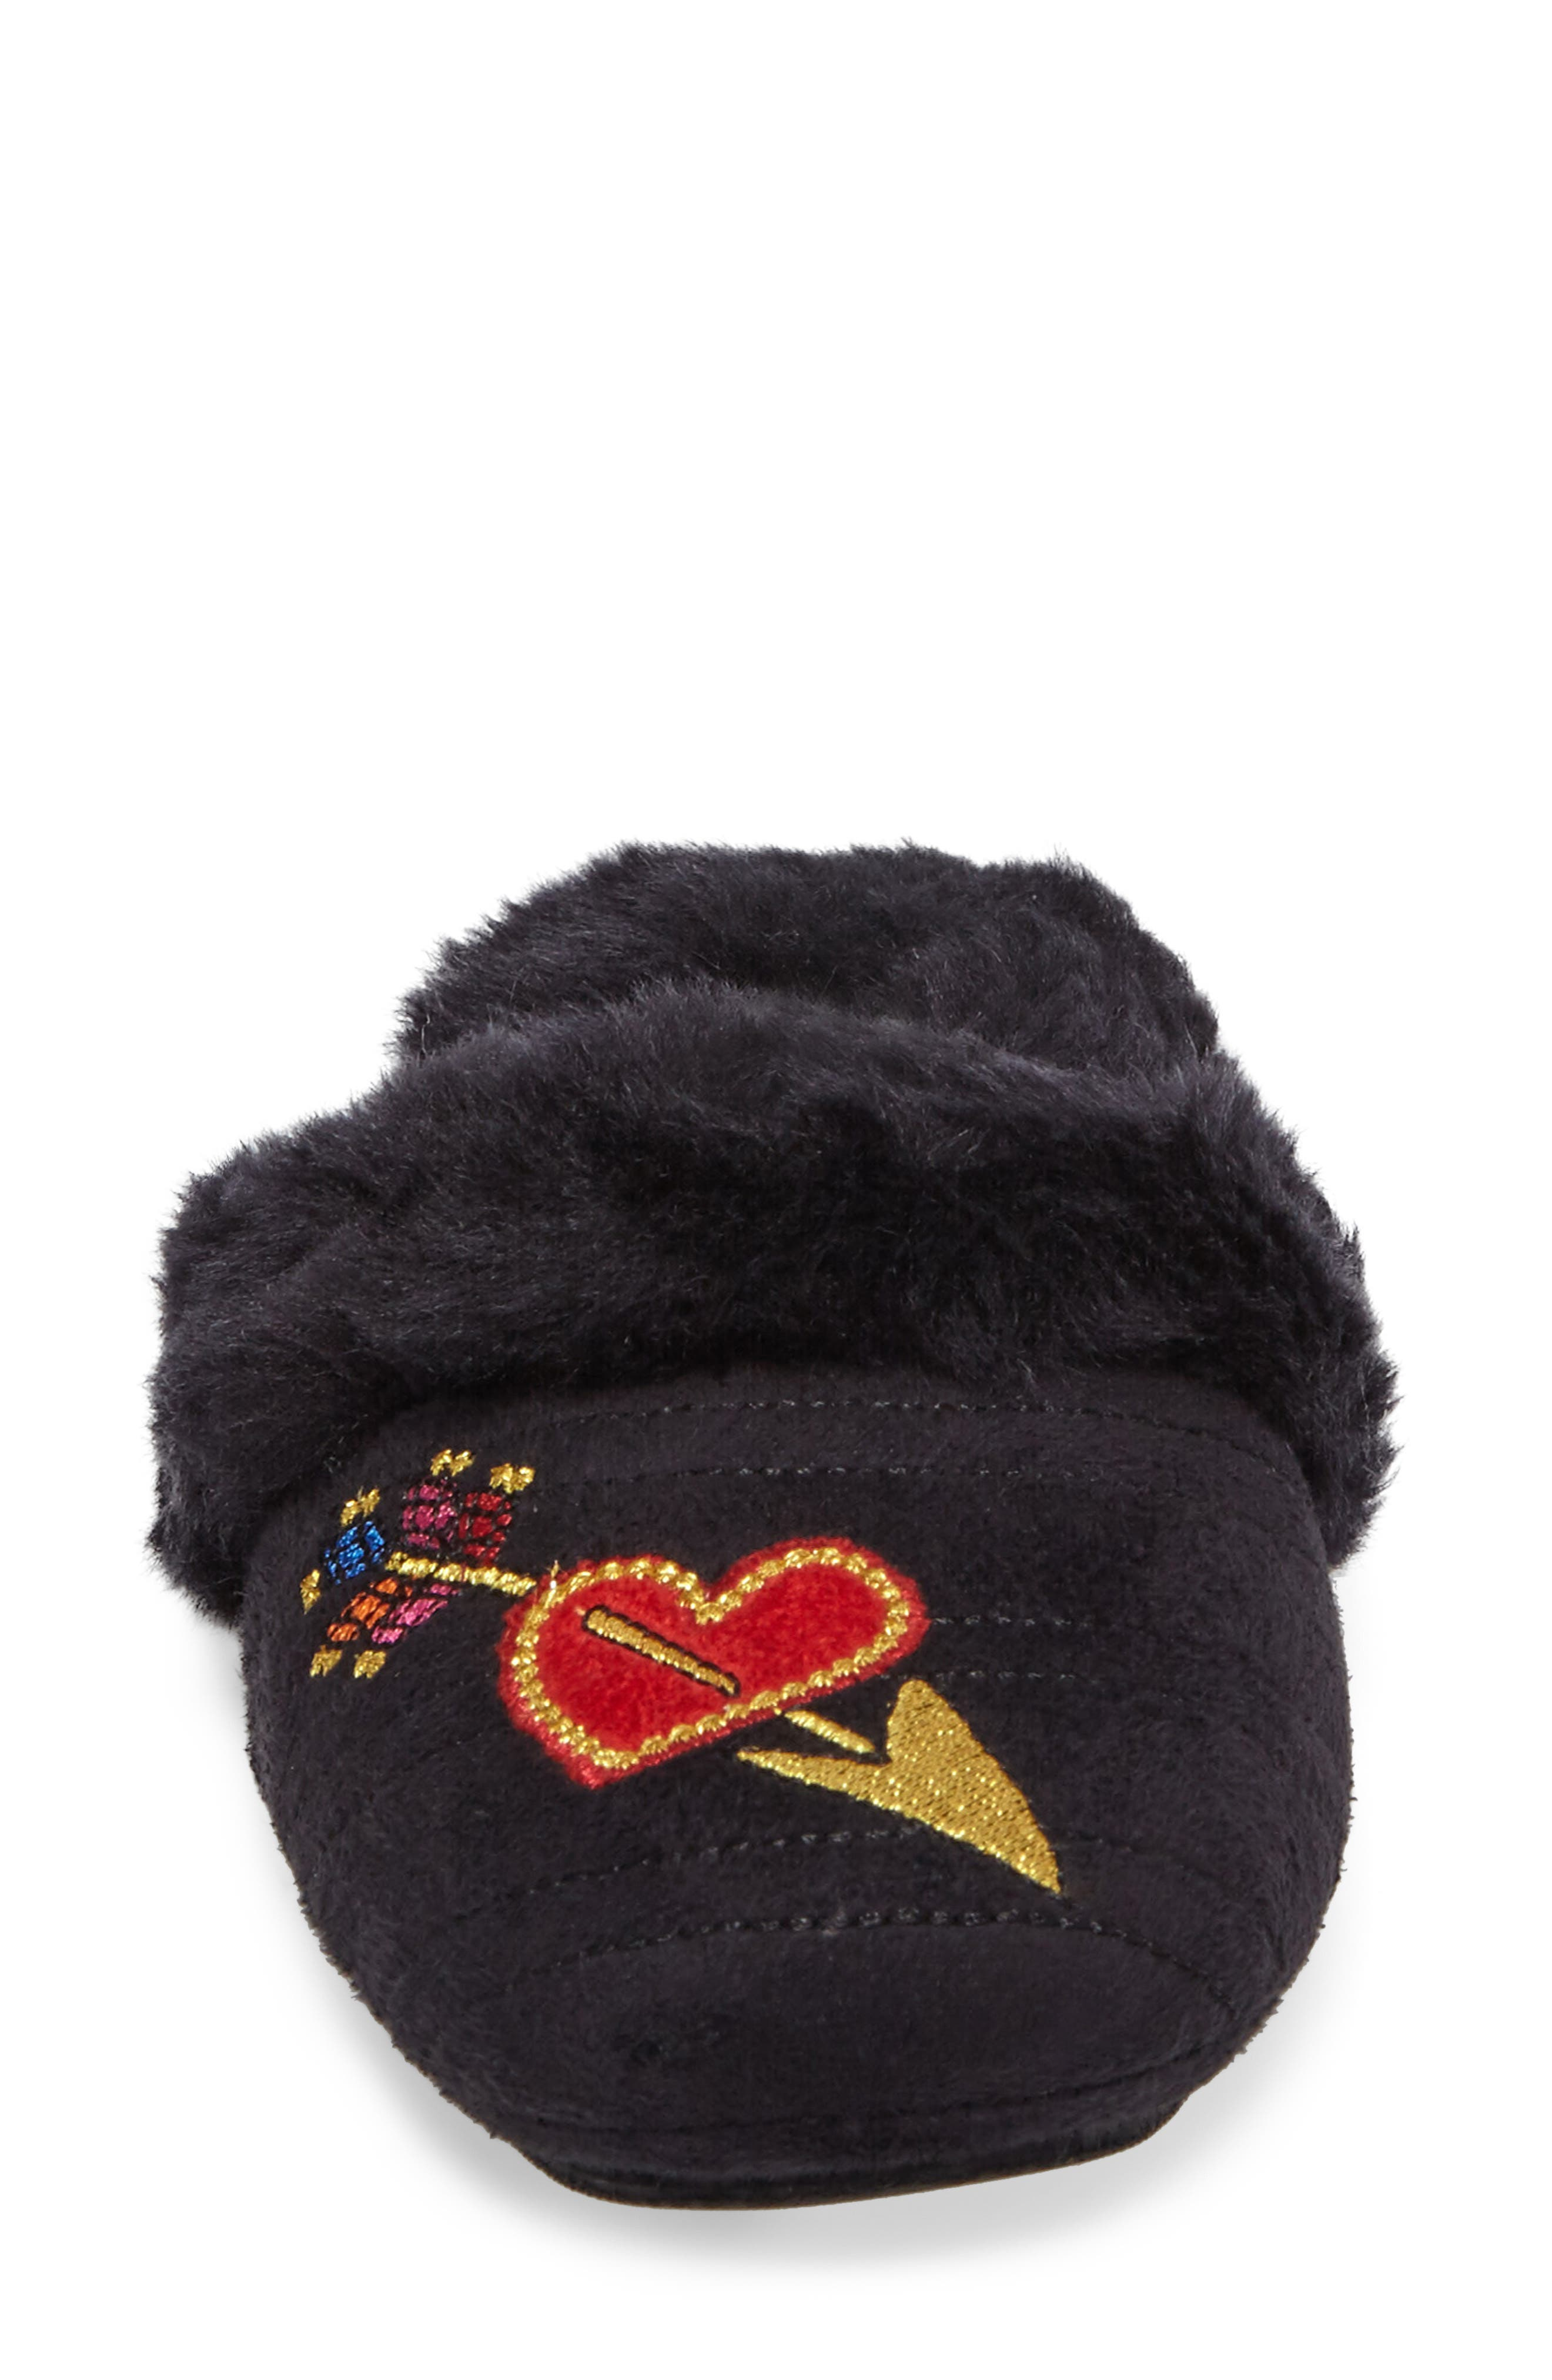 Heart & Arrow Slipper,                             Alternate thumbnail 4, color,                             001